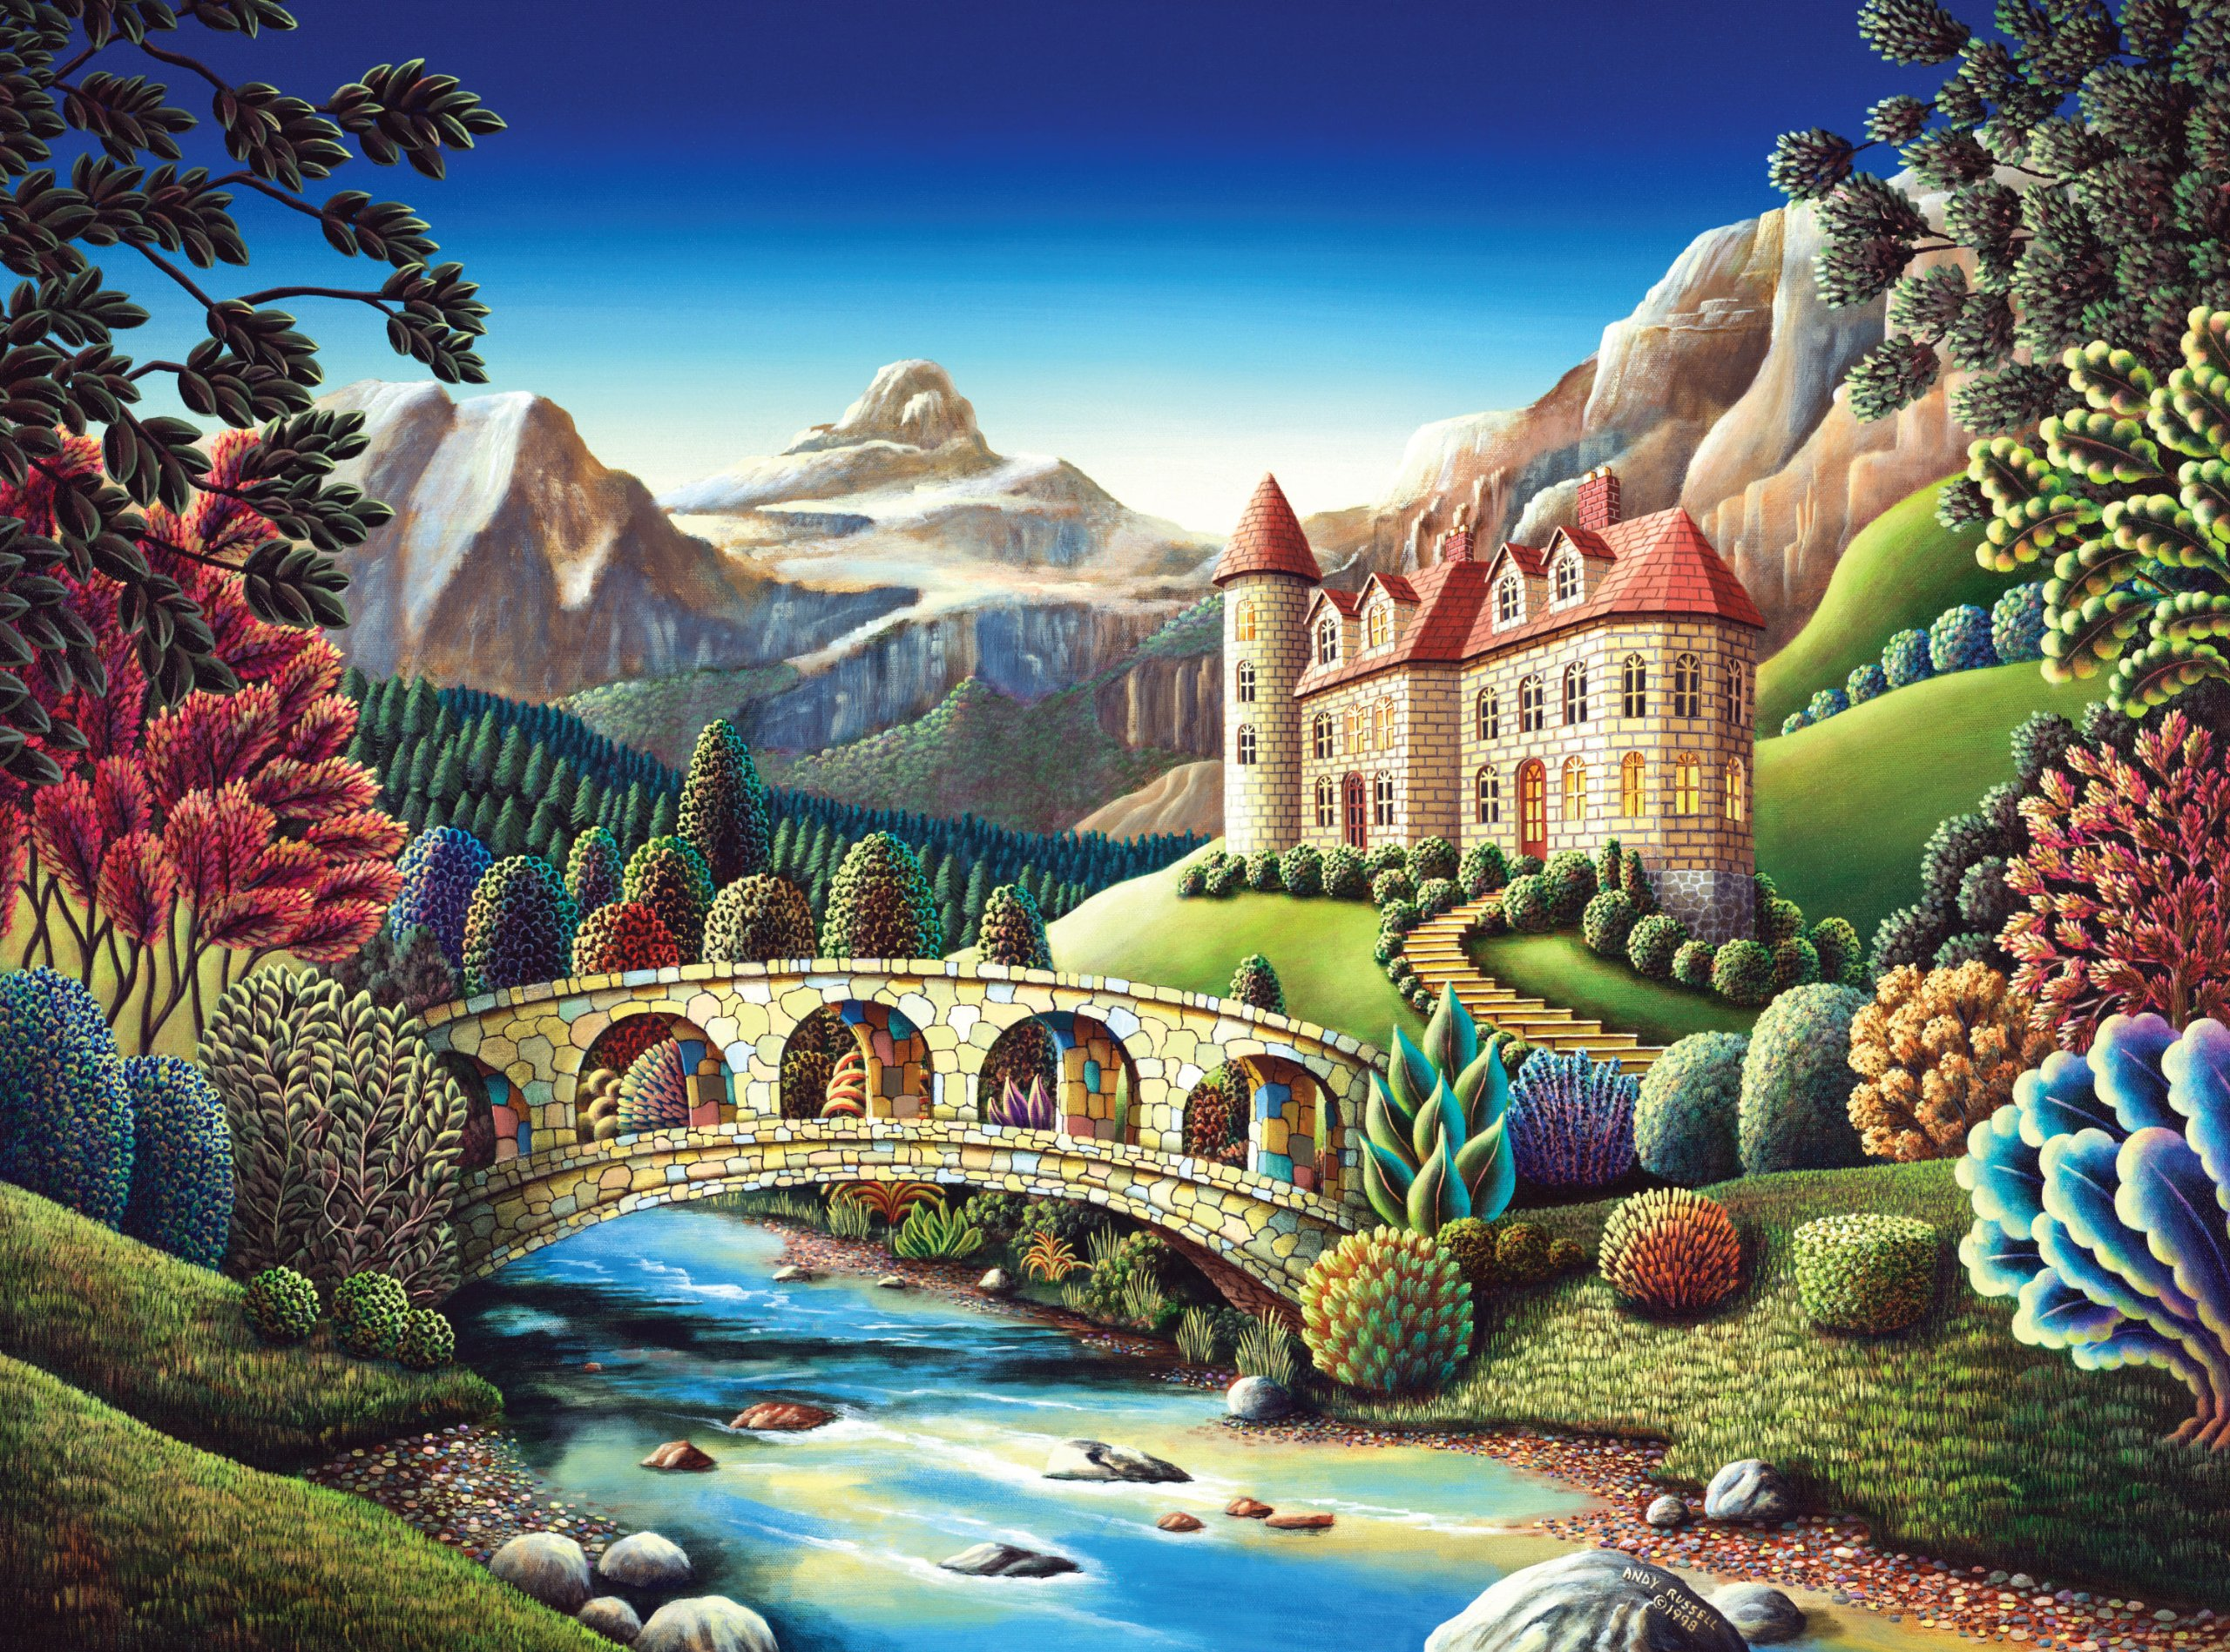 3d Tinkerbell Wallpaper Andy Russell Puzzles Stunning Dream Like Landscape Jigsaw